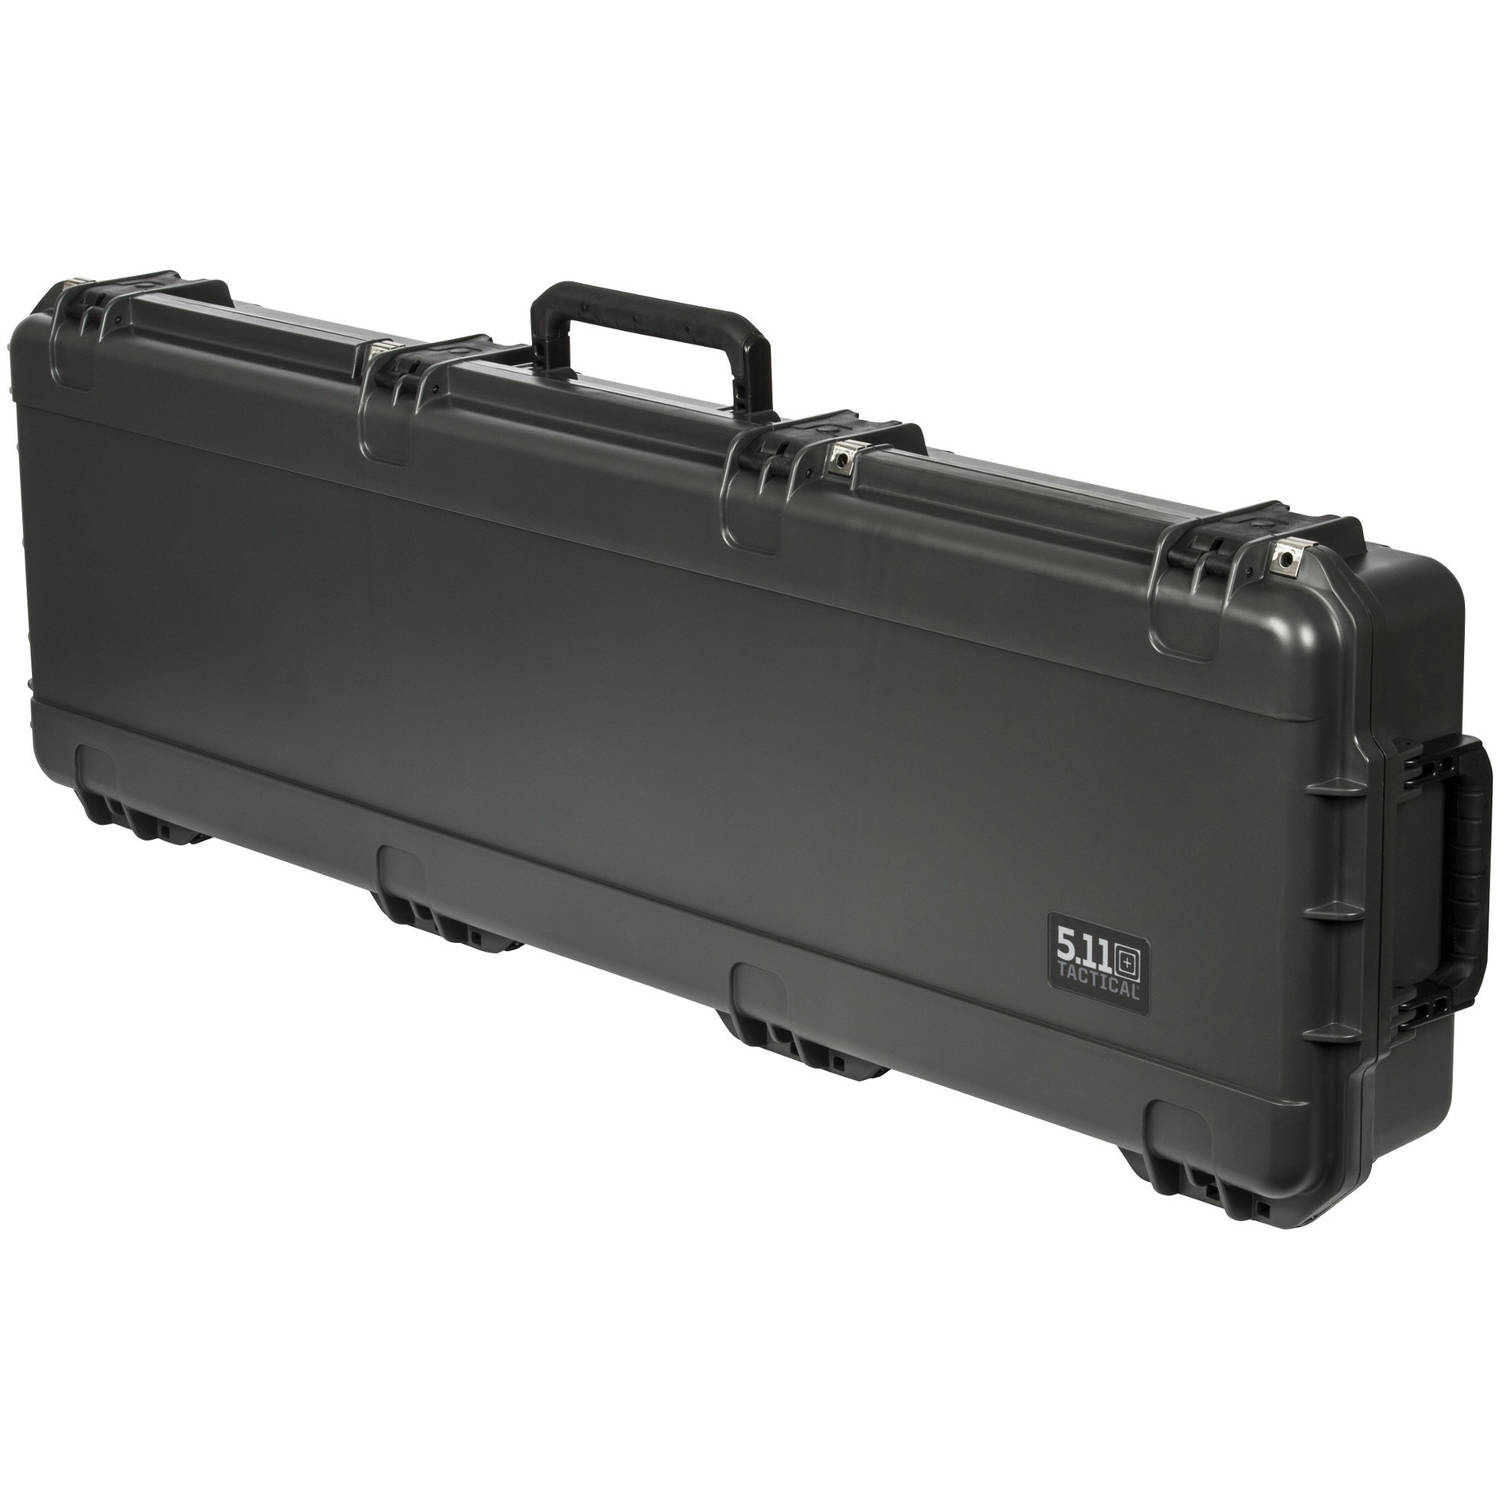 5.11 Tactical HC50F Hard Case, Double Tap